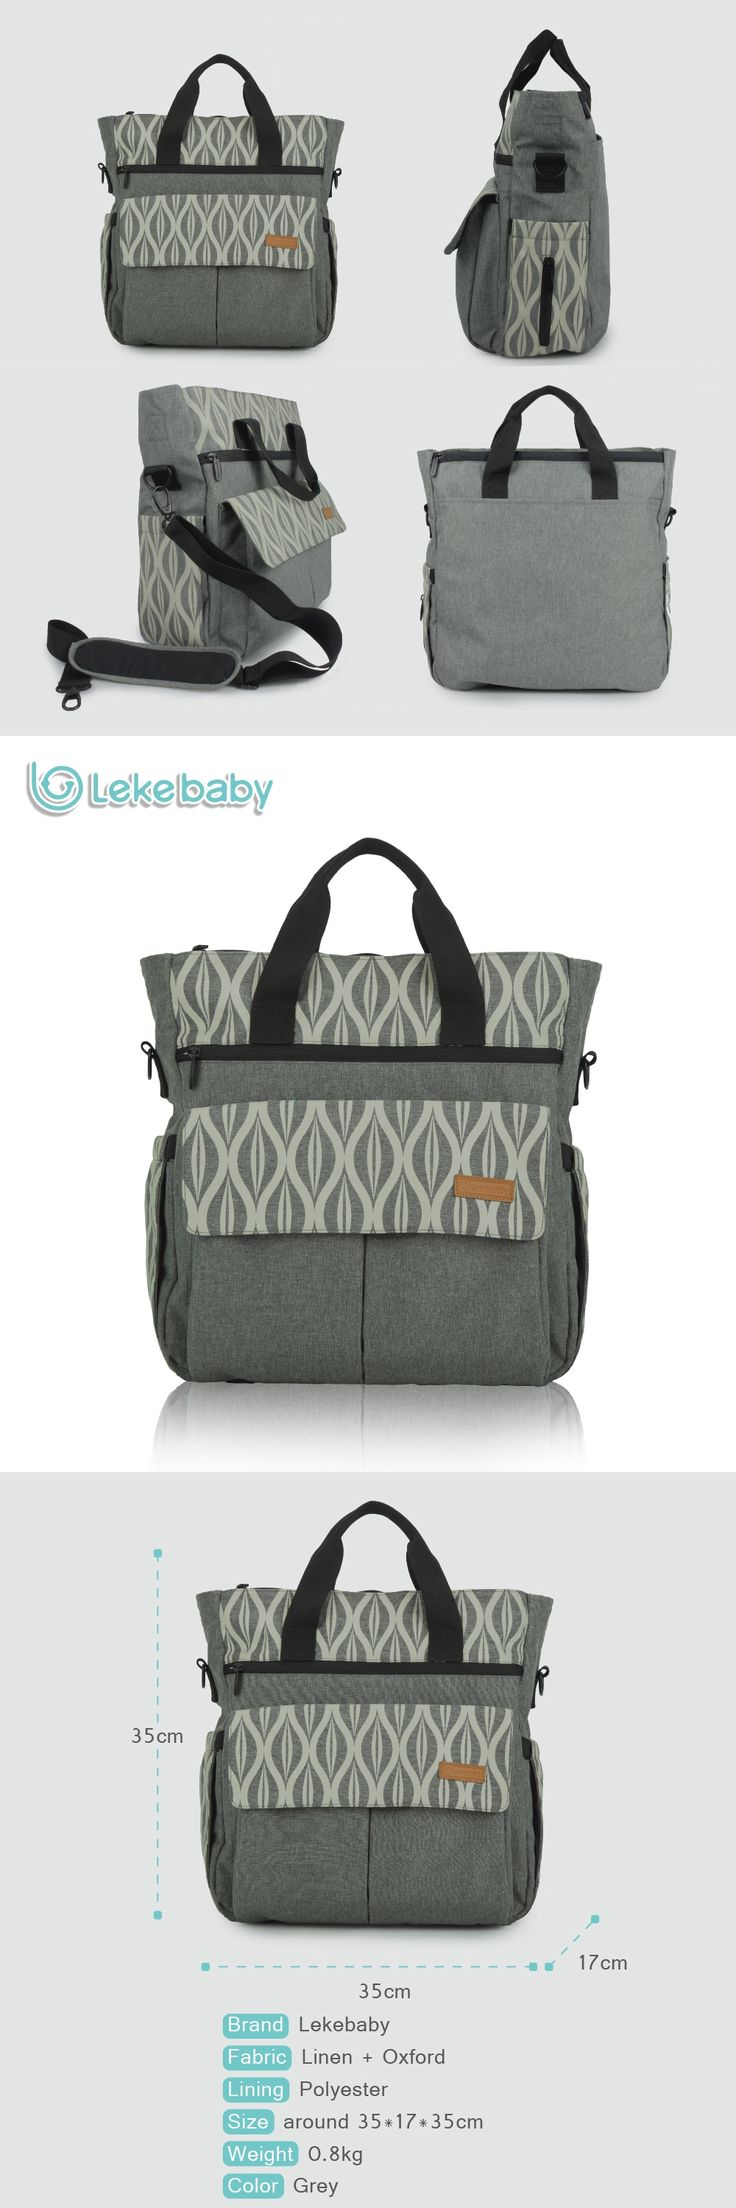 Lekebaby Diaper bag Fashion Baby bag Mom Maternity  Bag  Oversize Opening Printed Changing Nappy Tote Bag for Baby Stroller